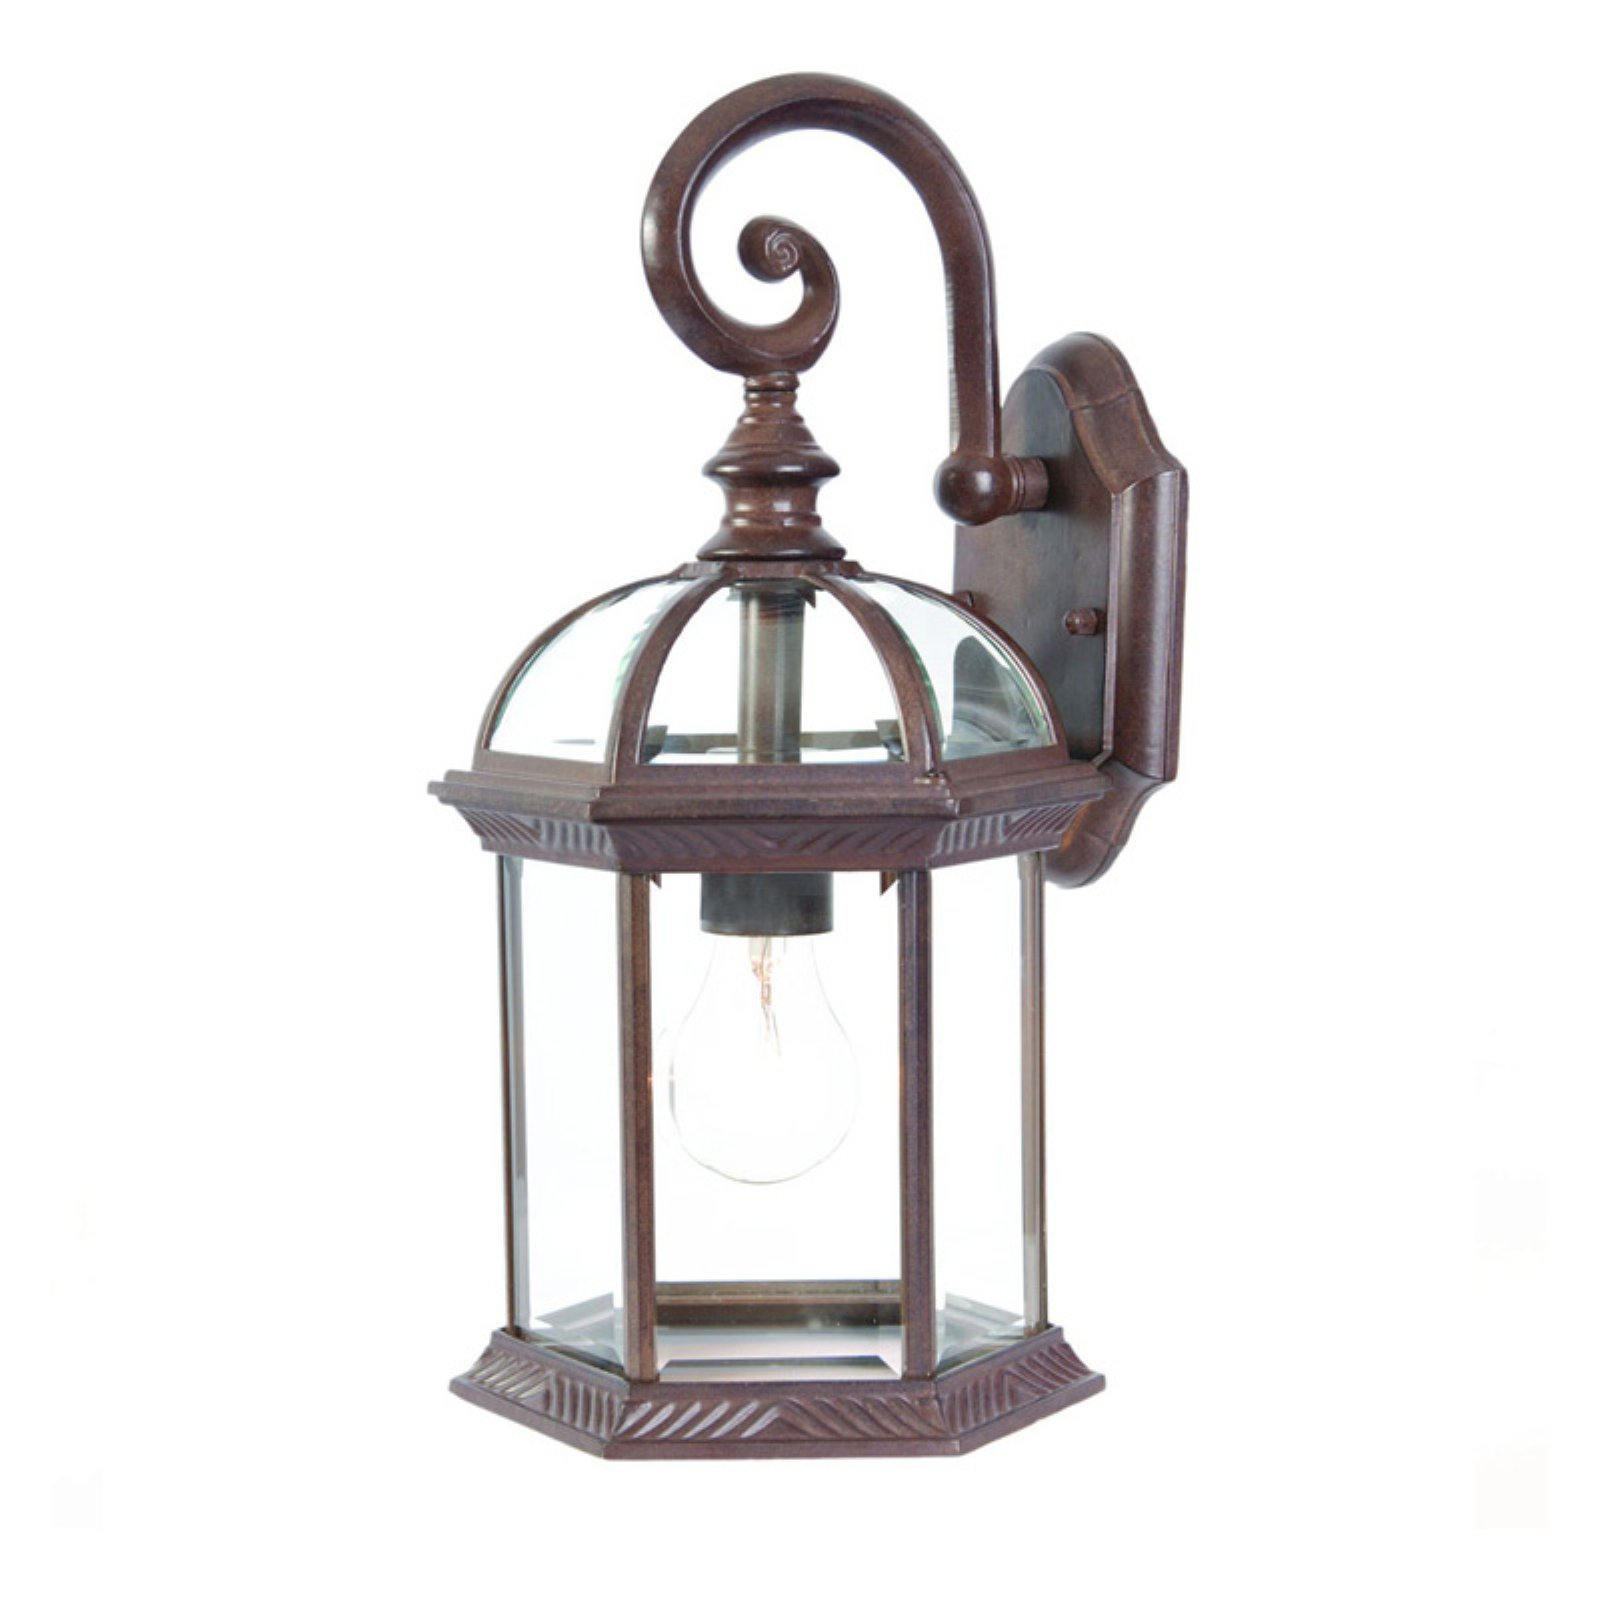 Acclaim Lighting Dover Outdoor Wall Mount Light Fixture